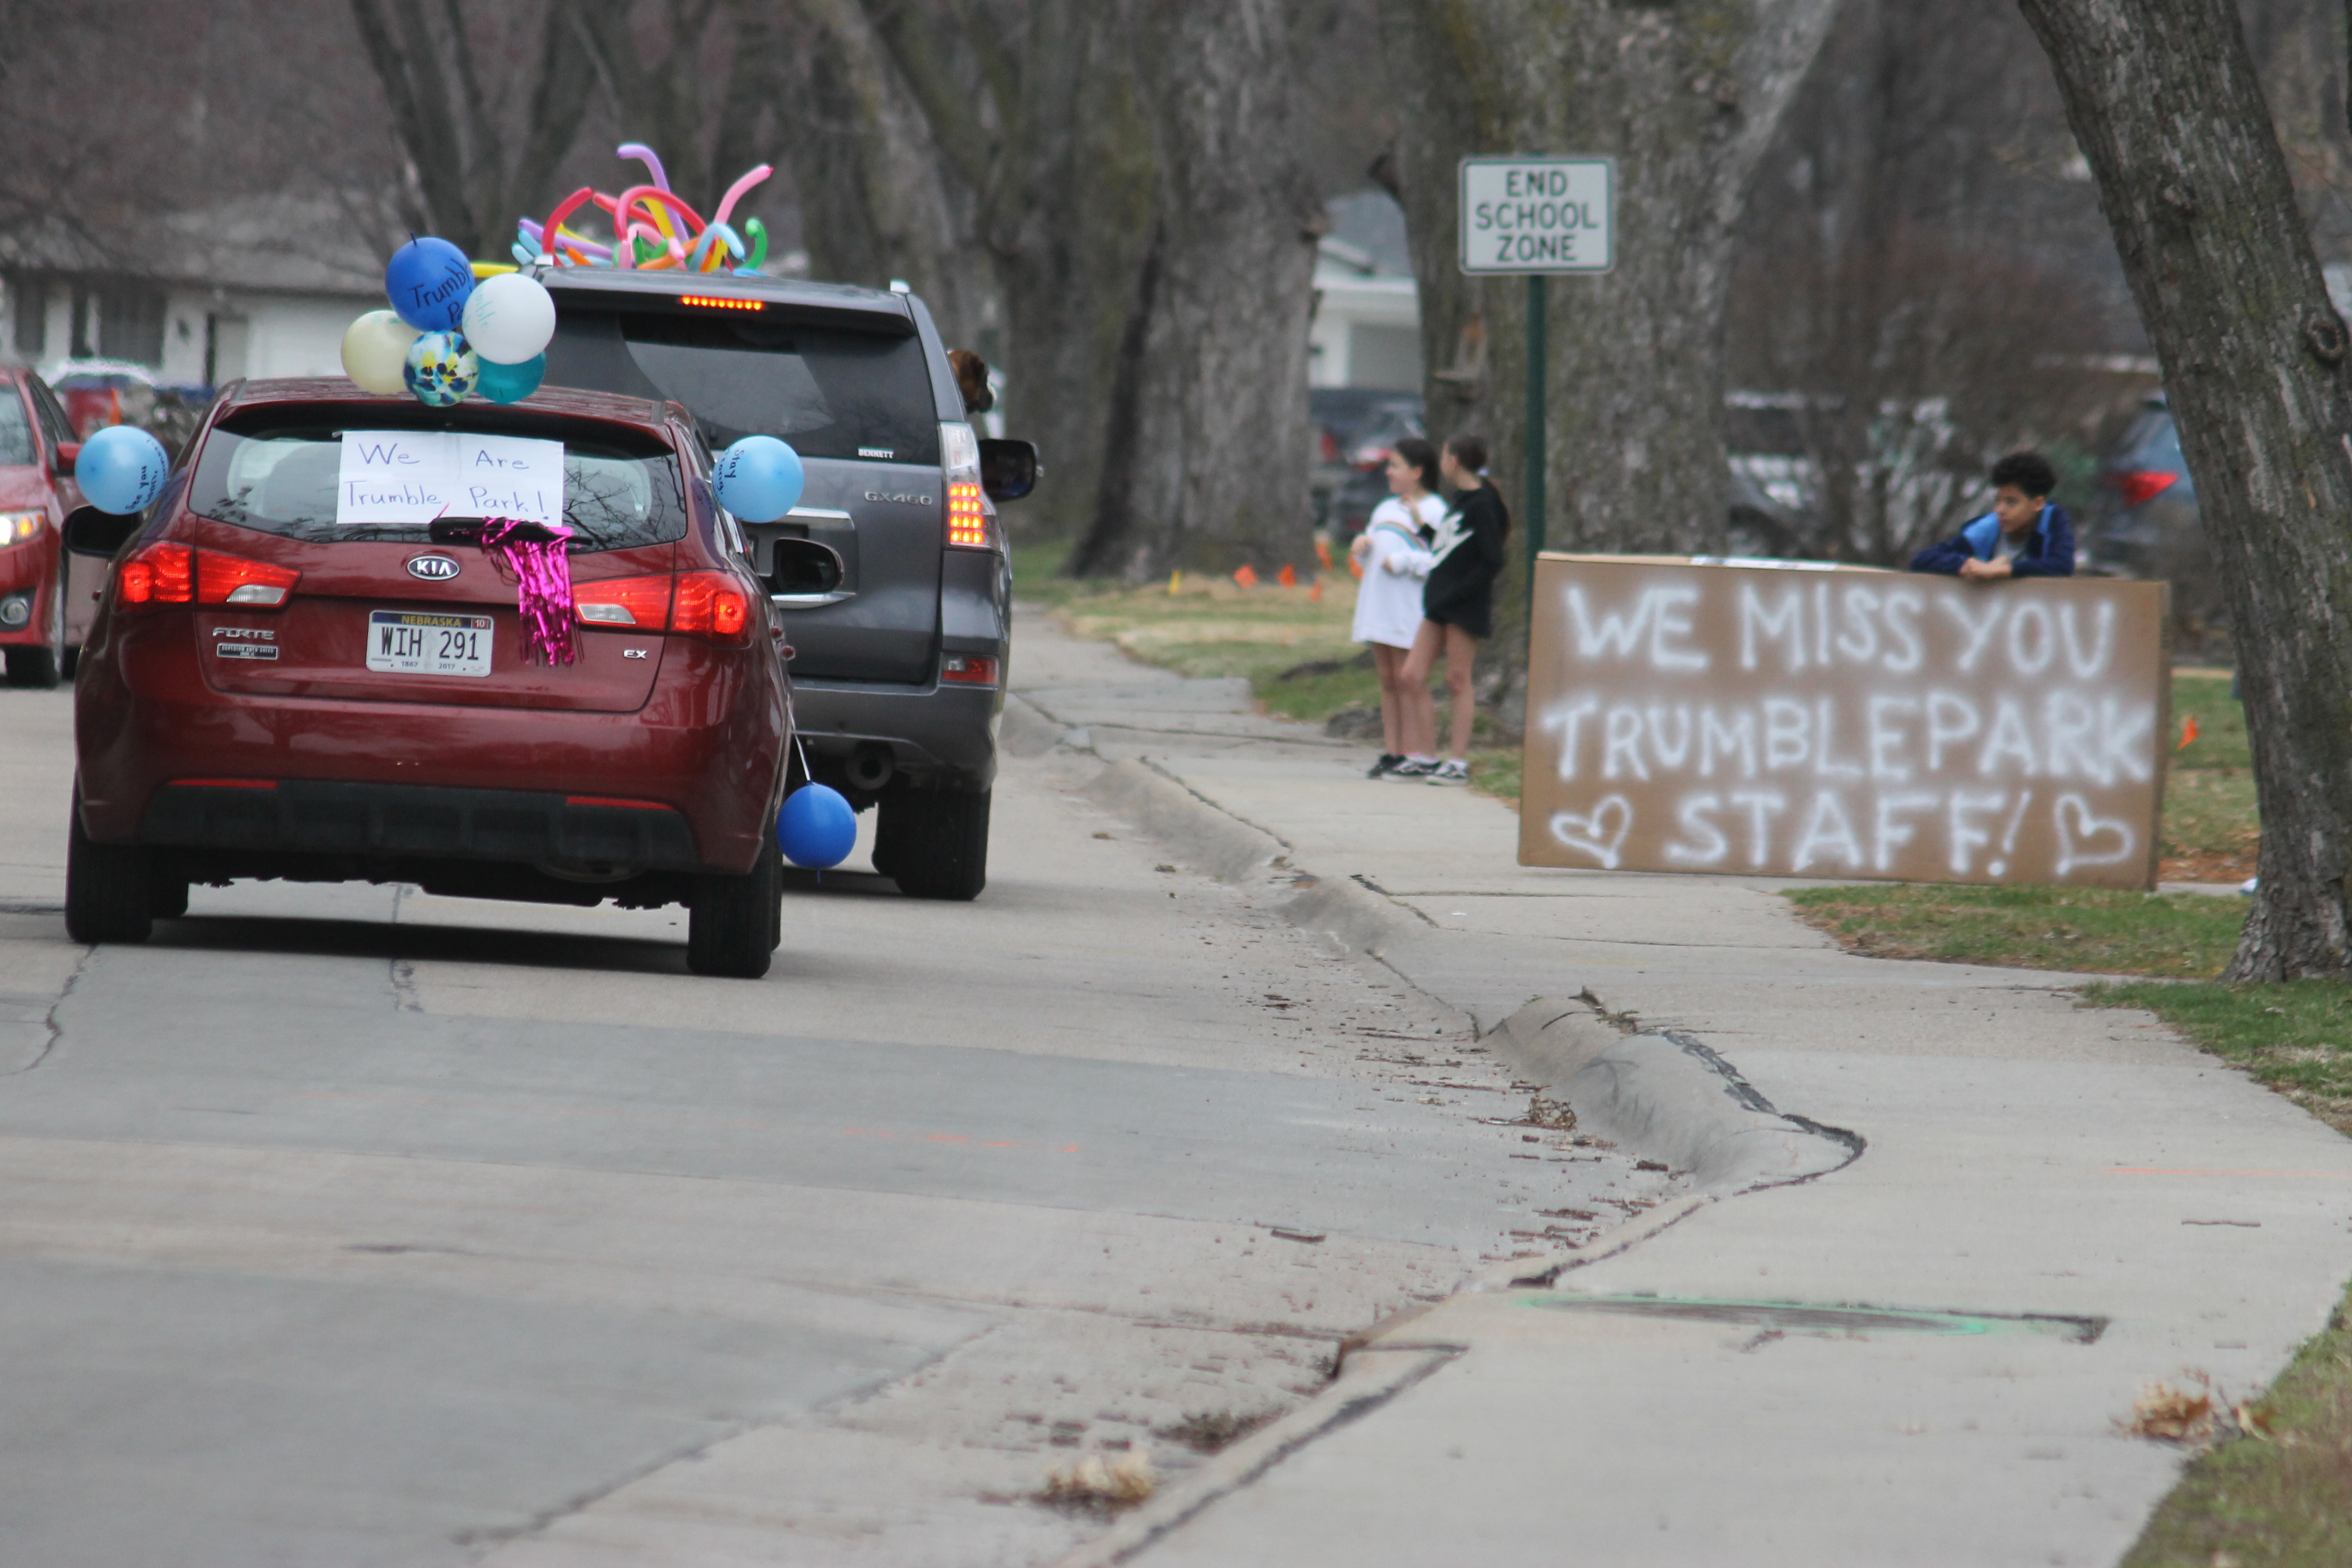 Trumble Park teachers wave to students as part of car parade